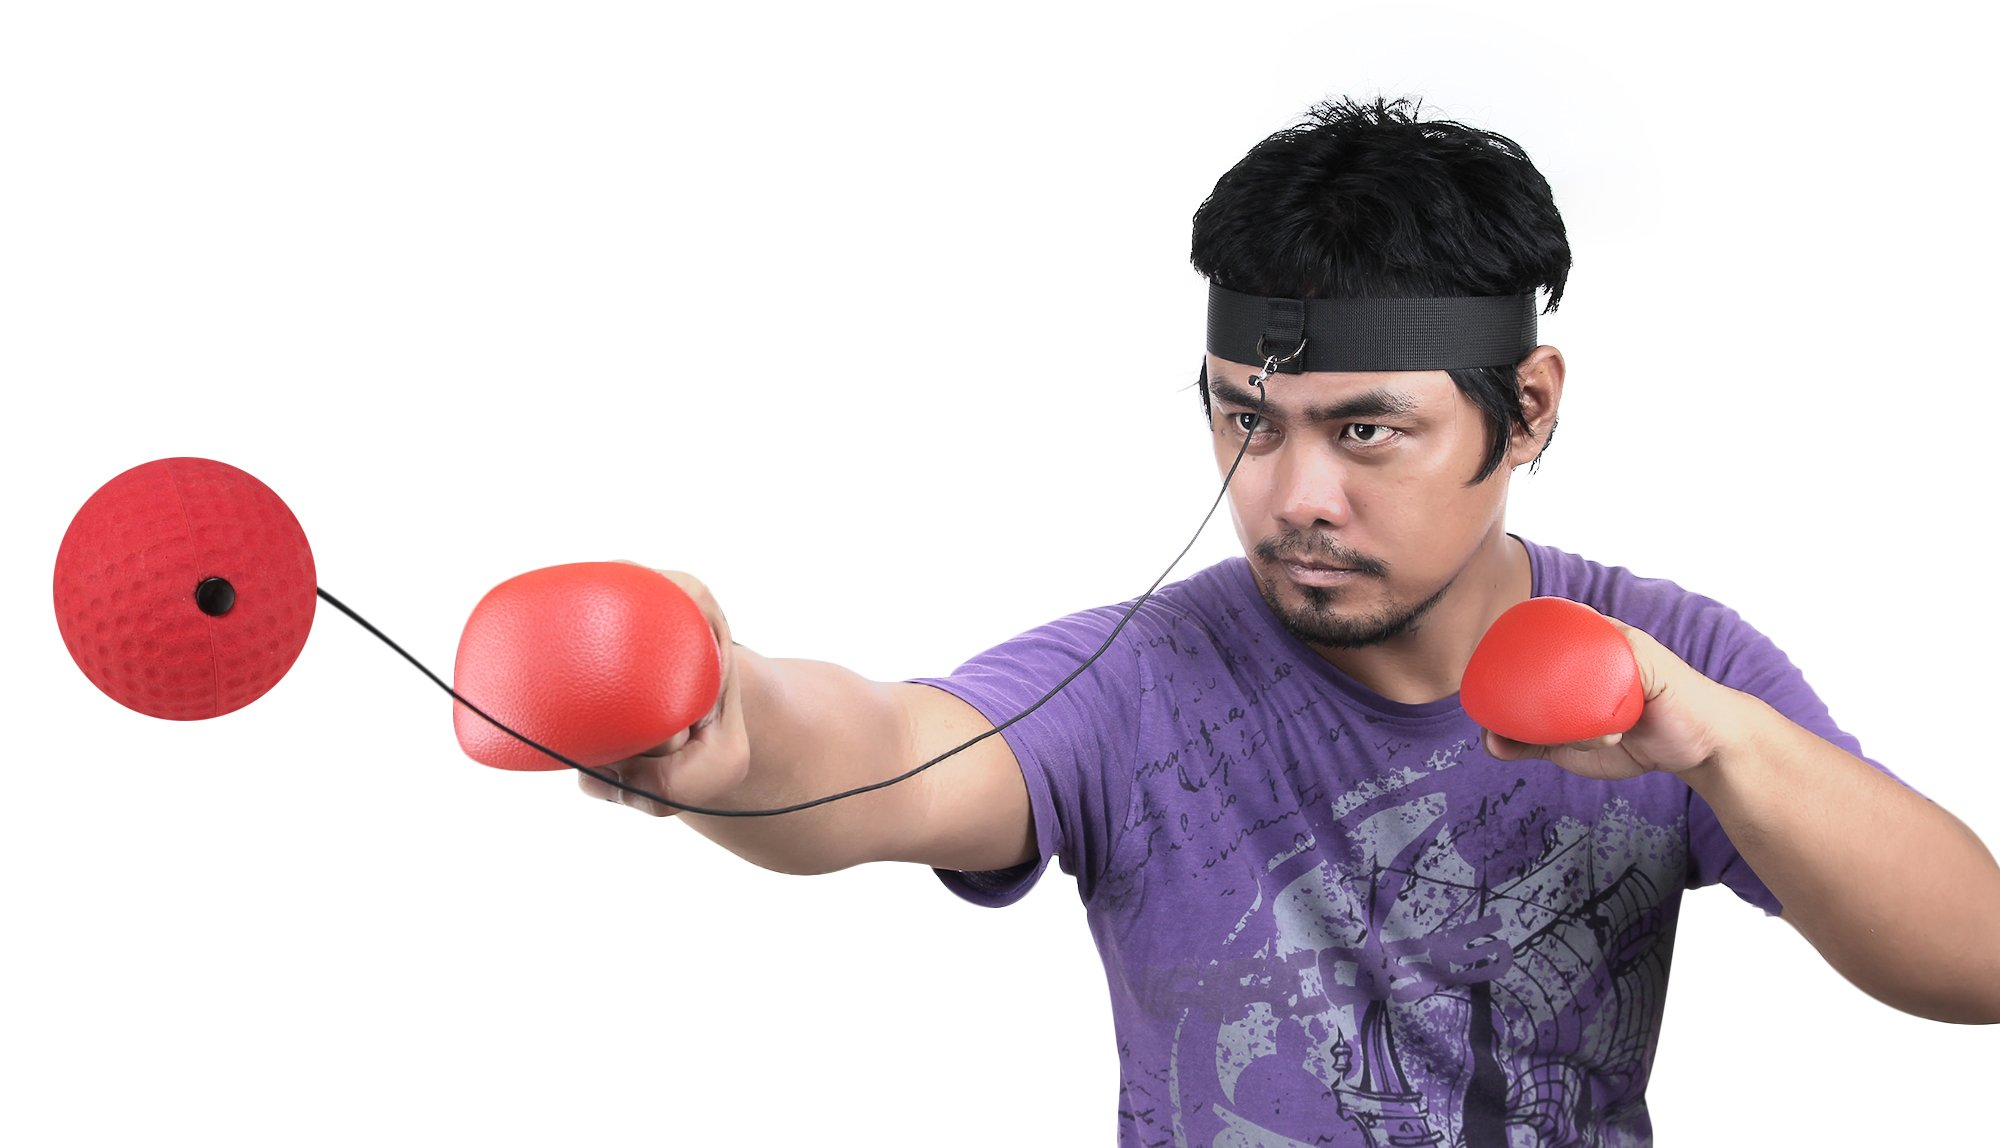 Boxing Reflex Ball - Boxing Equipment, Adjustable Head Band, Gloves, Extra String, Instruction and Repair Guide Included - Perfect For Reflex/Speed Training Improve Reactions for Kids Aswell by Punch King (Image #8)